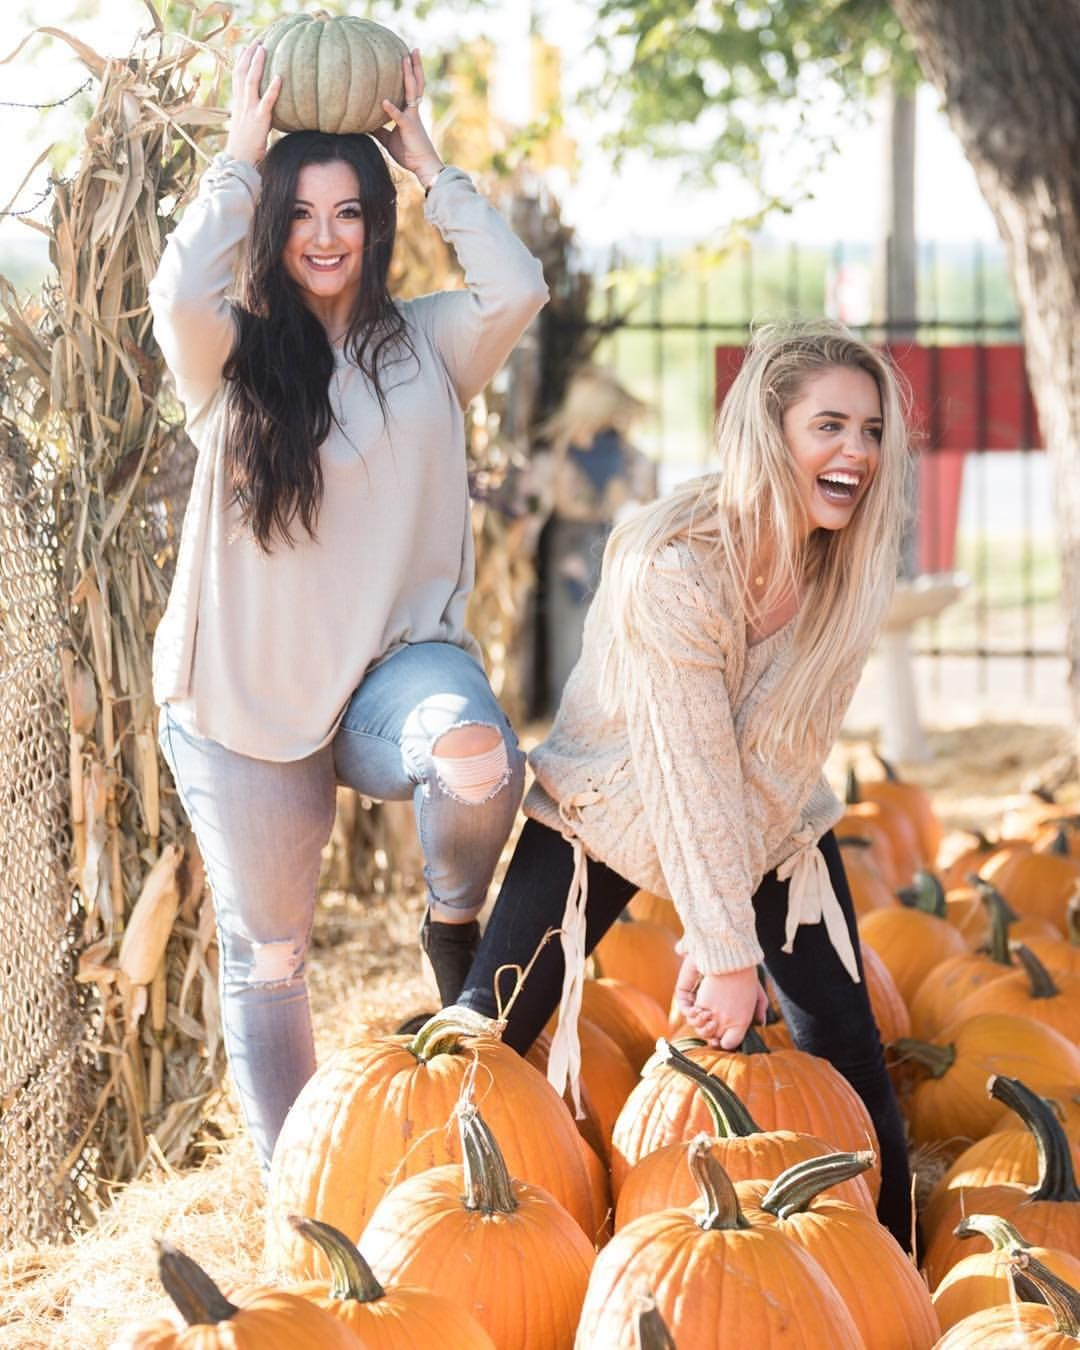 Best Friends At A Pumpkin Patch For Fall Photoshoot